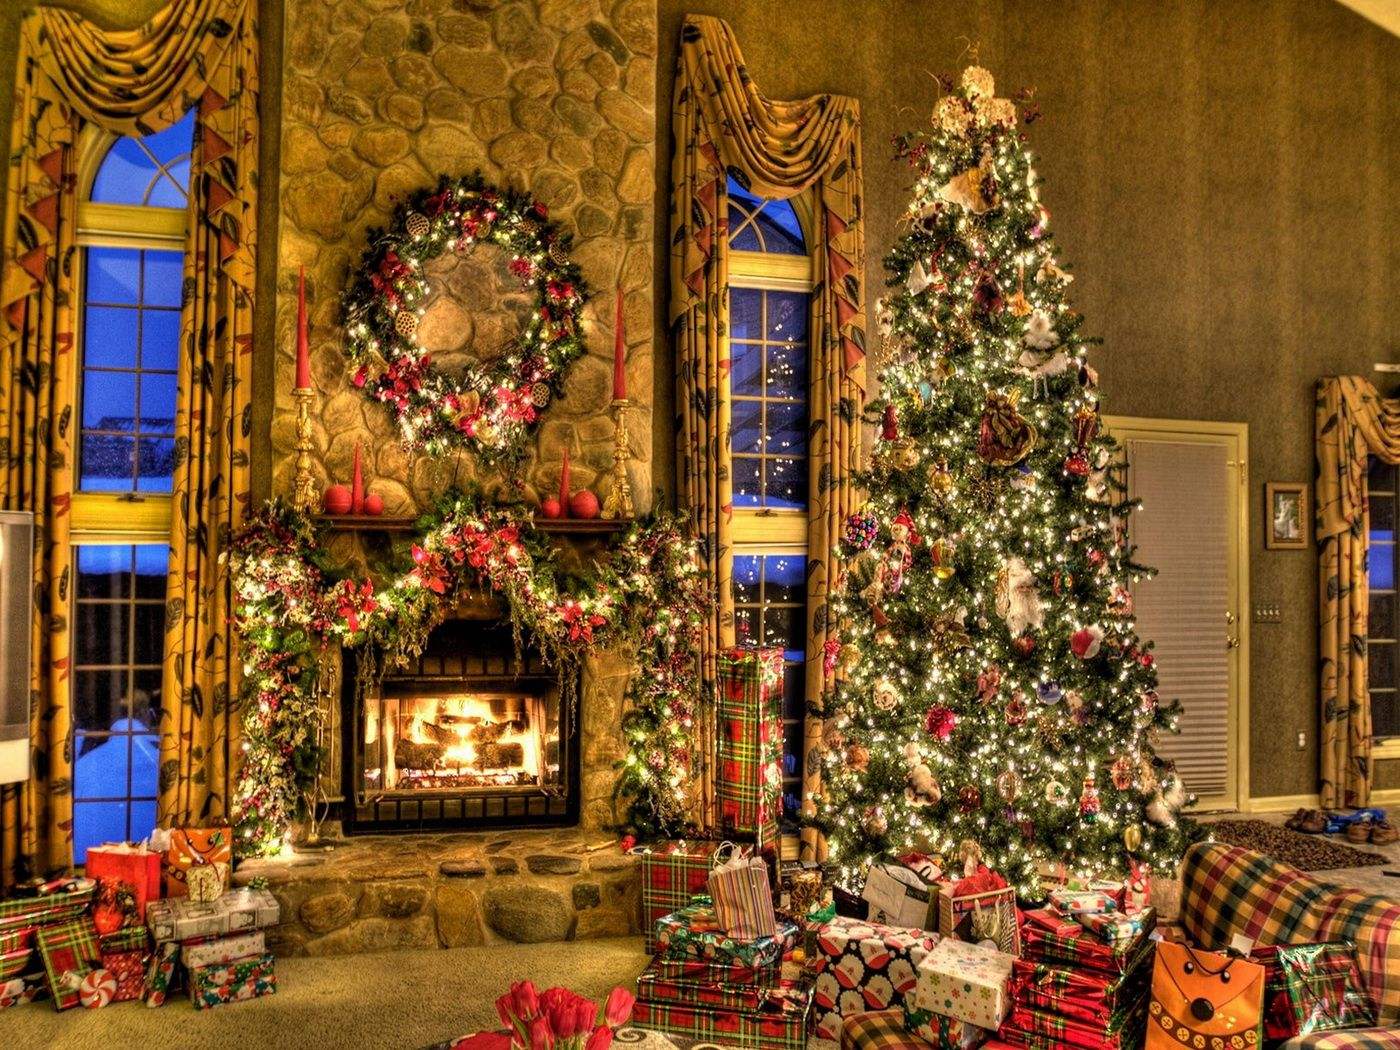 Beautiful outdoor christmas decorations - Living Room Holiday Decorations With A Giant Christmas Tree Beautiful